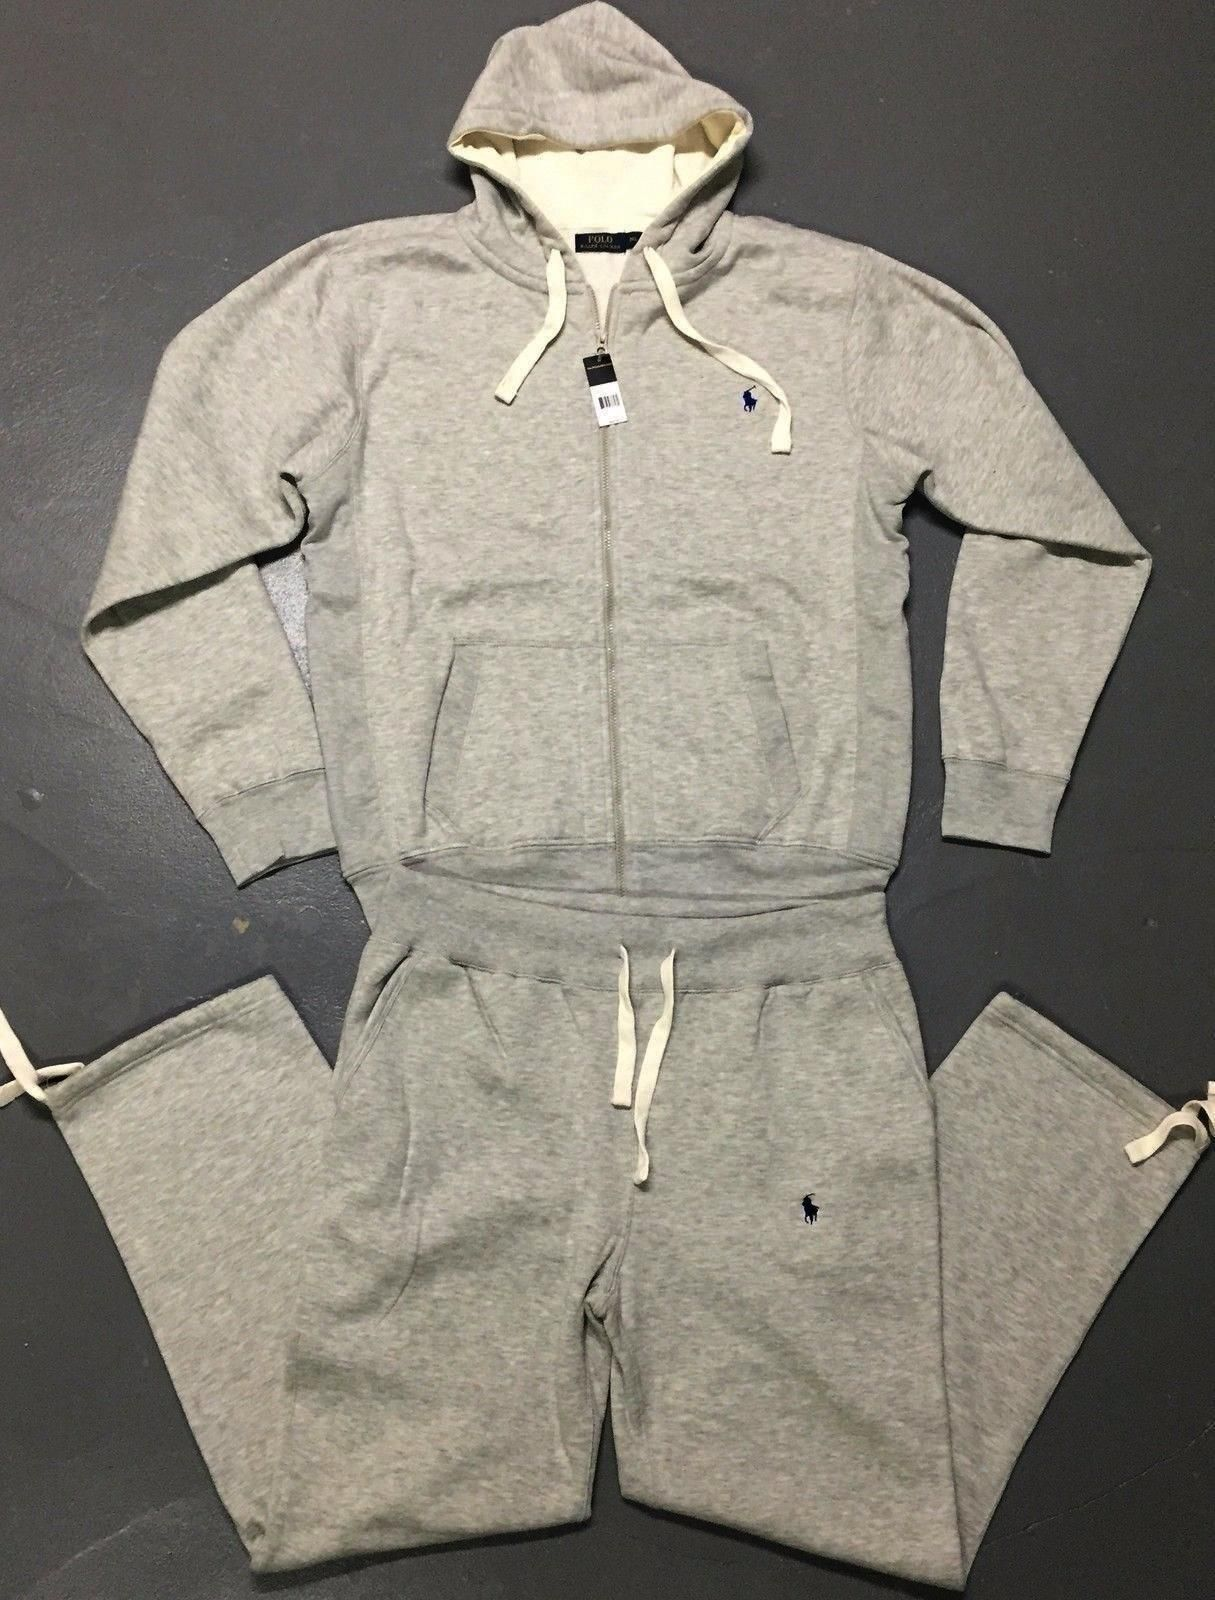 6d0cb7ccd cool RALPH LAUREN POLO FULL ZIP SWEATSUIT FOR MEN COMPLETE SET BRAND NEW  WITH TAGS Check